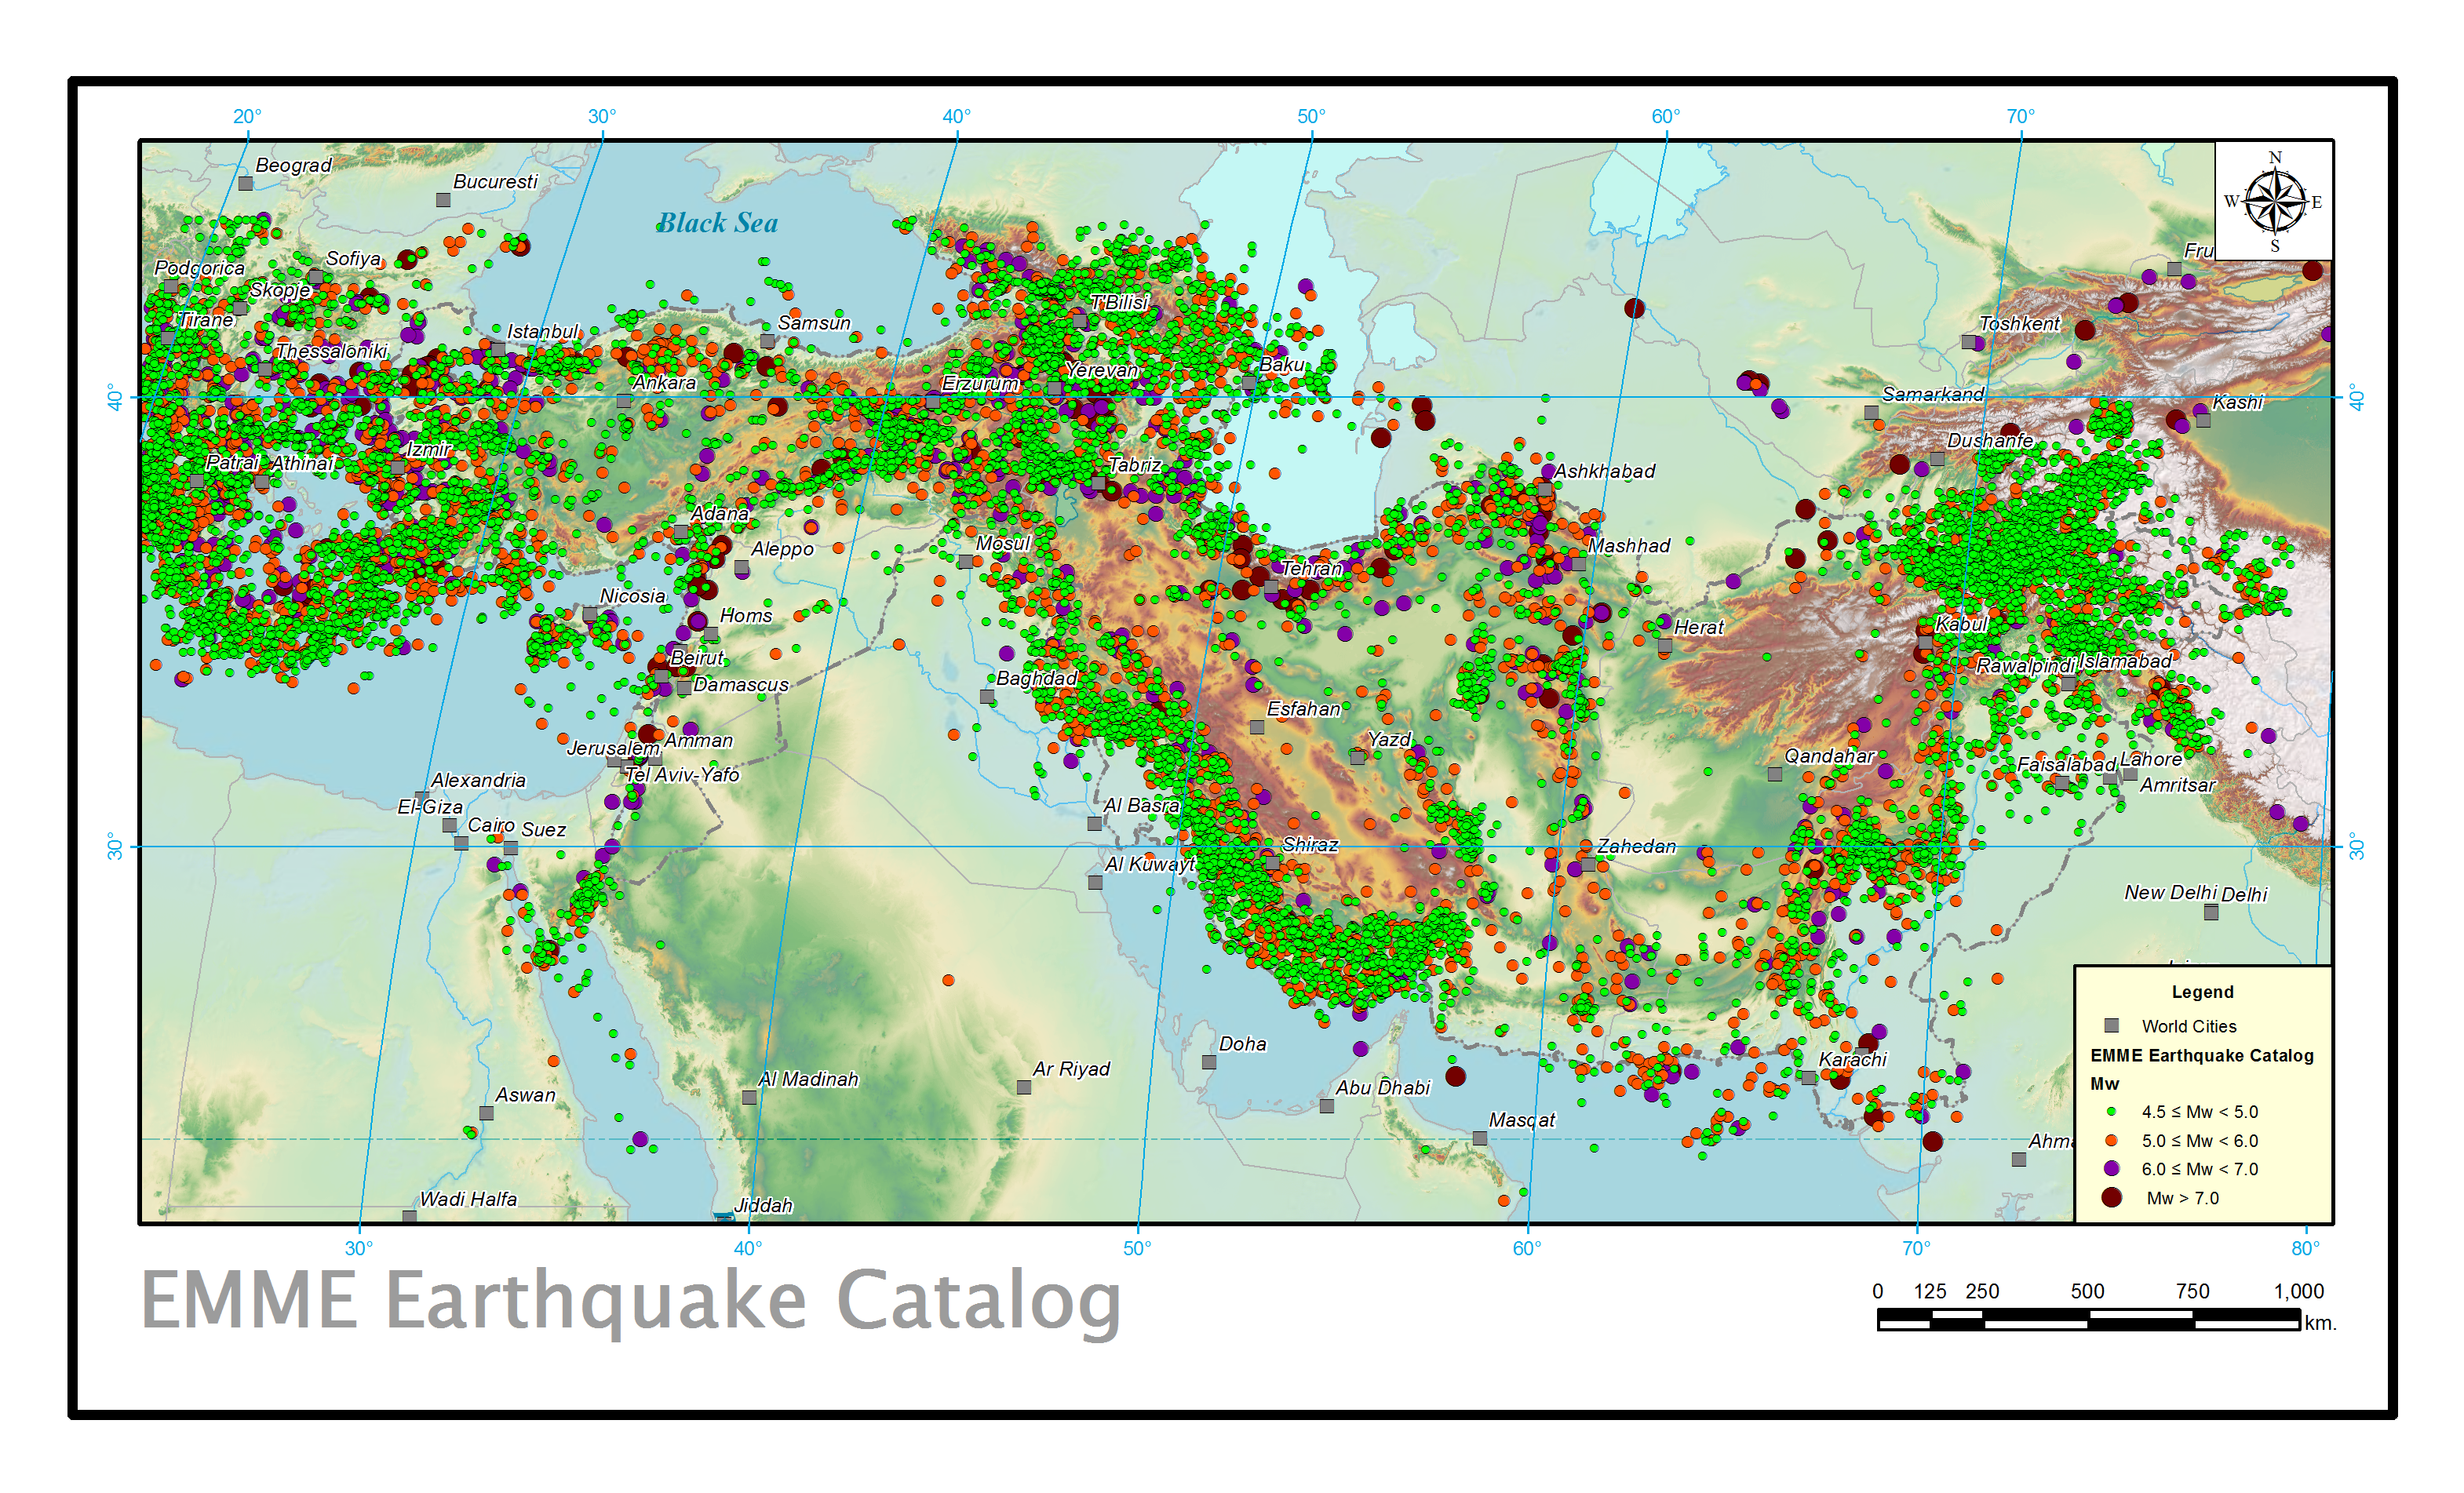 Earthquake Catalogue of the Middle East